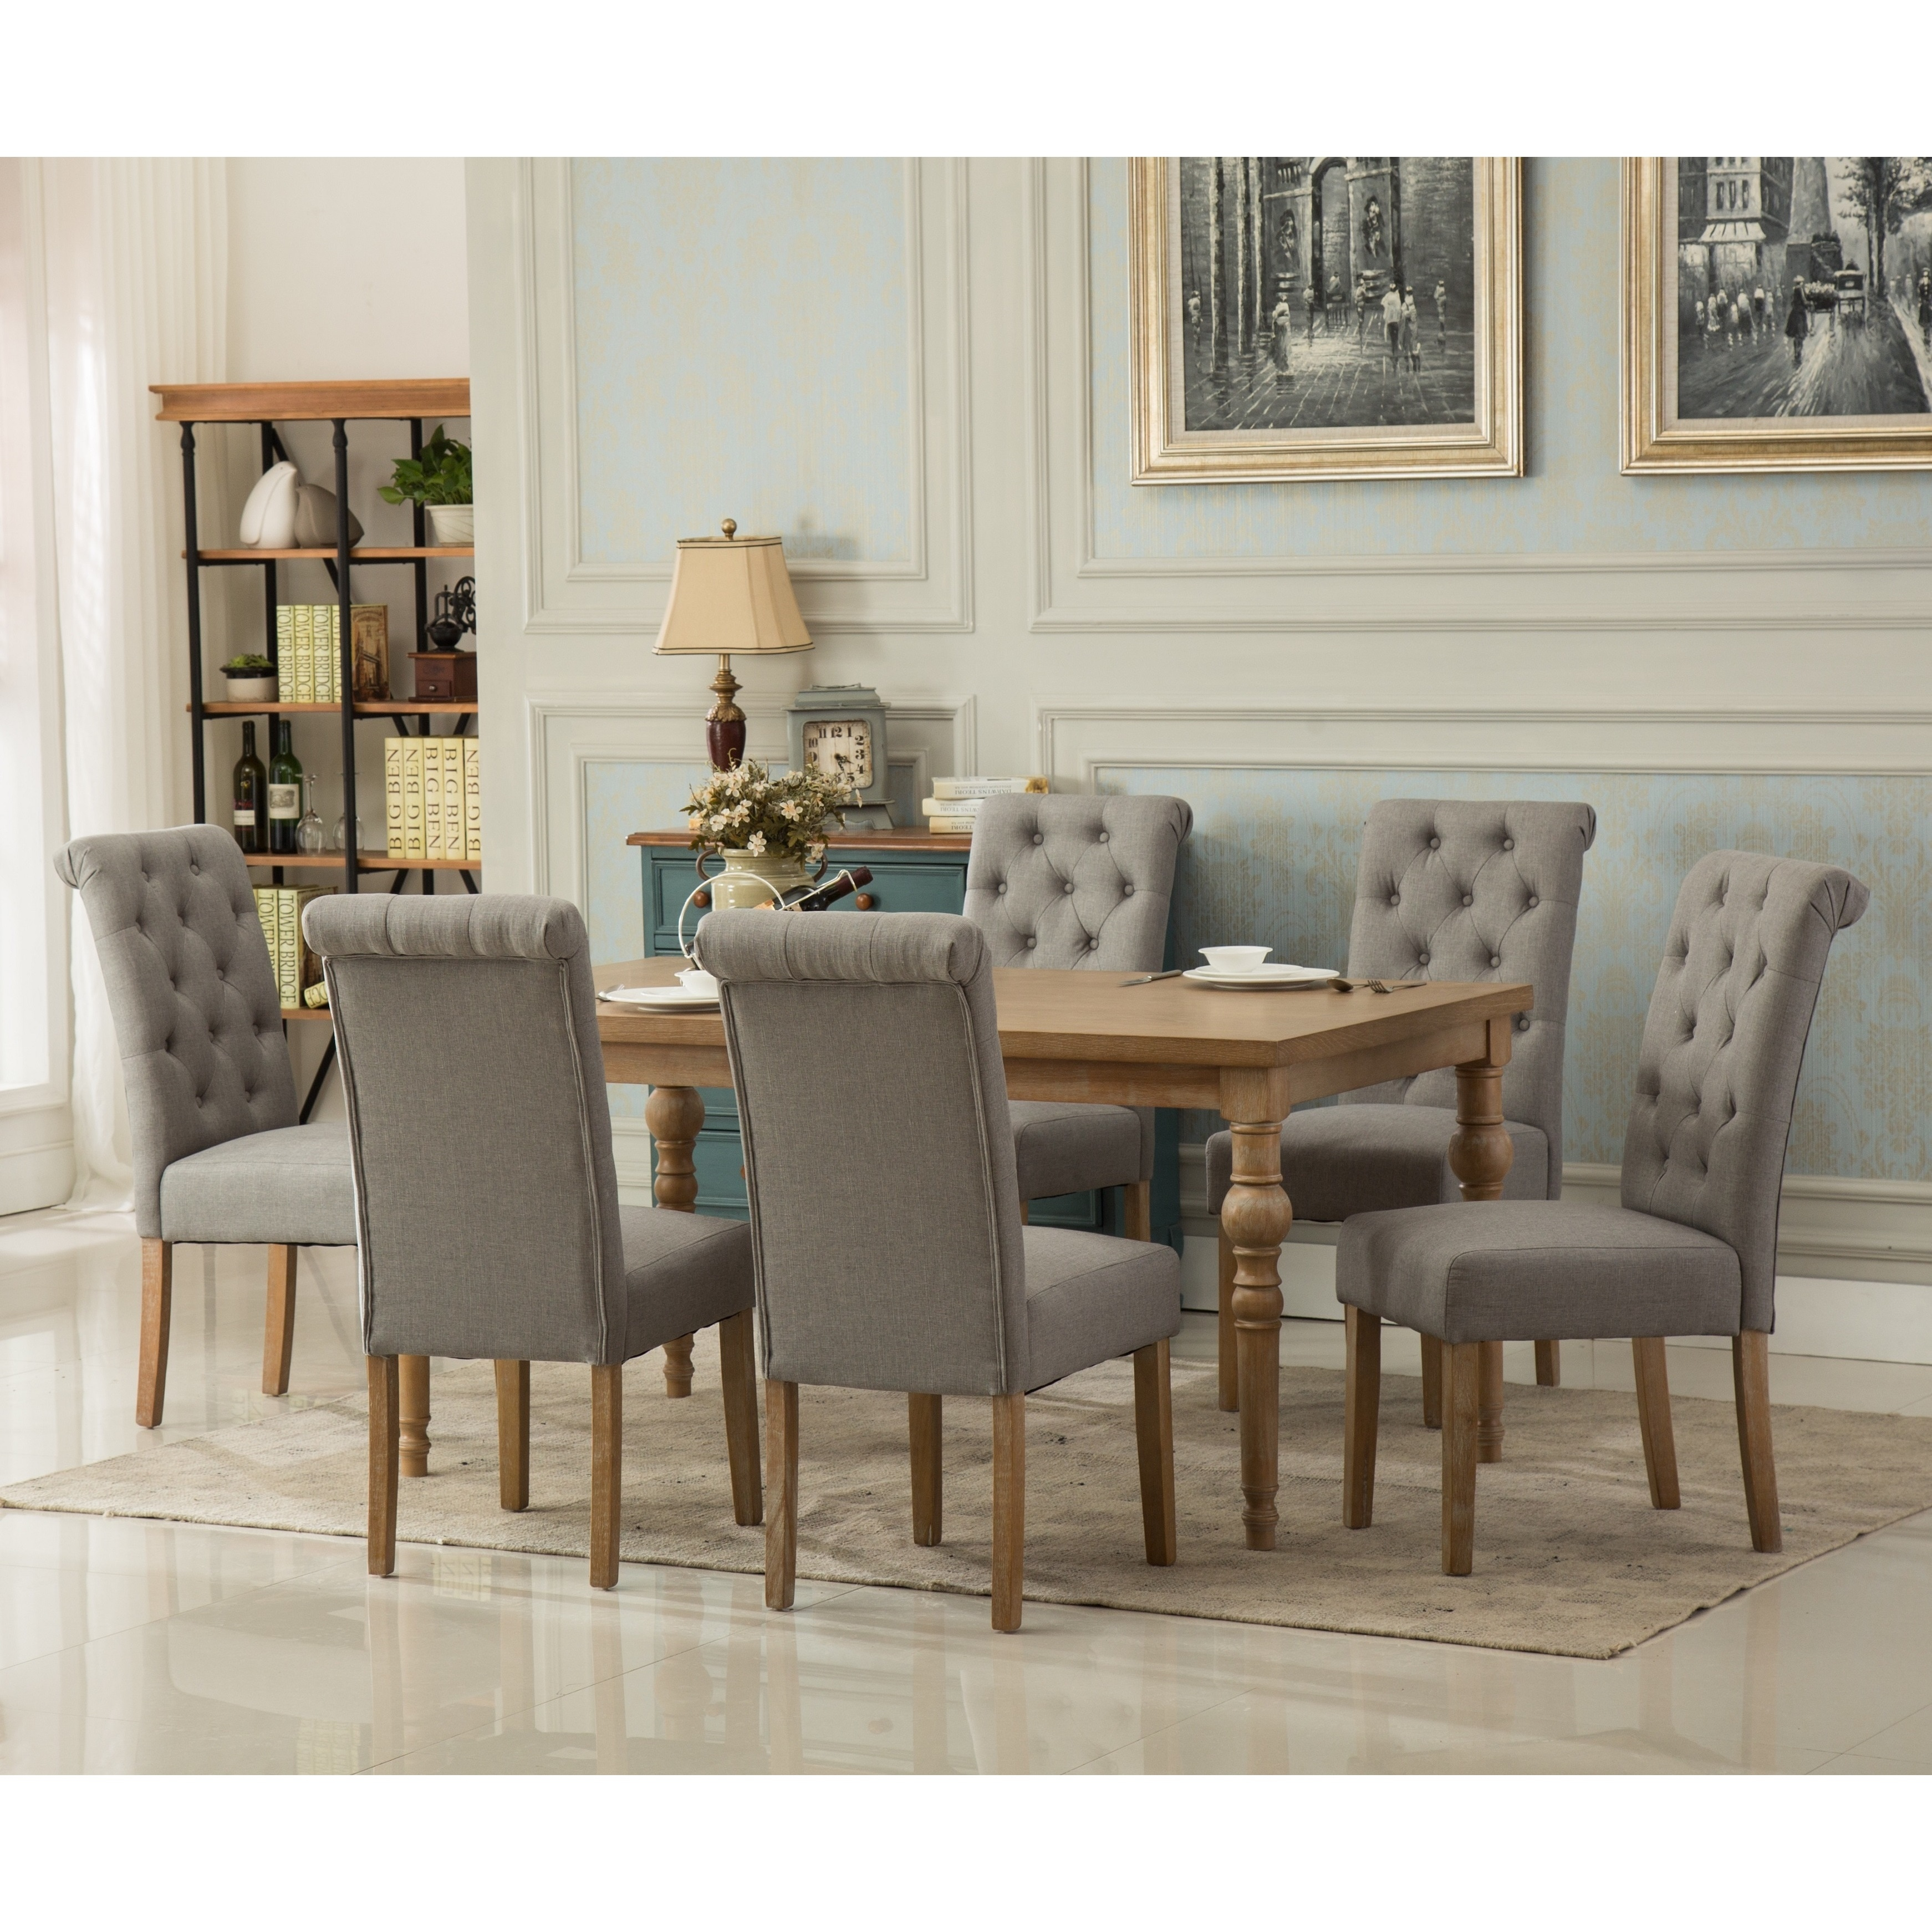 Habitanian Solid Wood Dining Table With 6 On Tufted Chairs Free Shipping Today 21146679